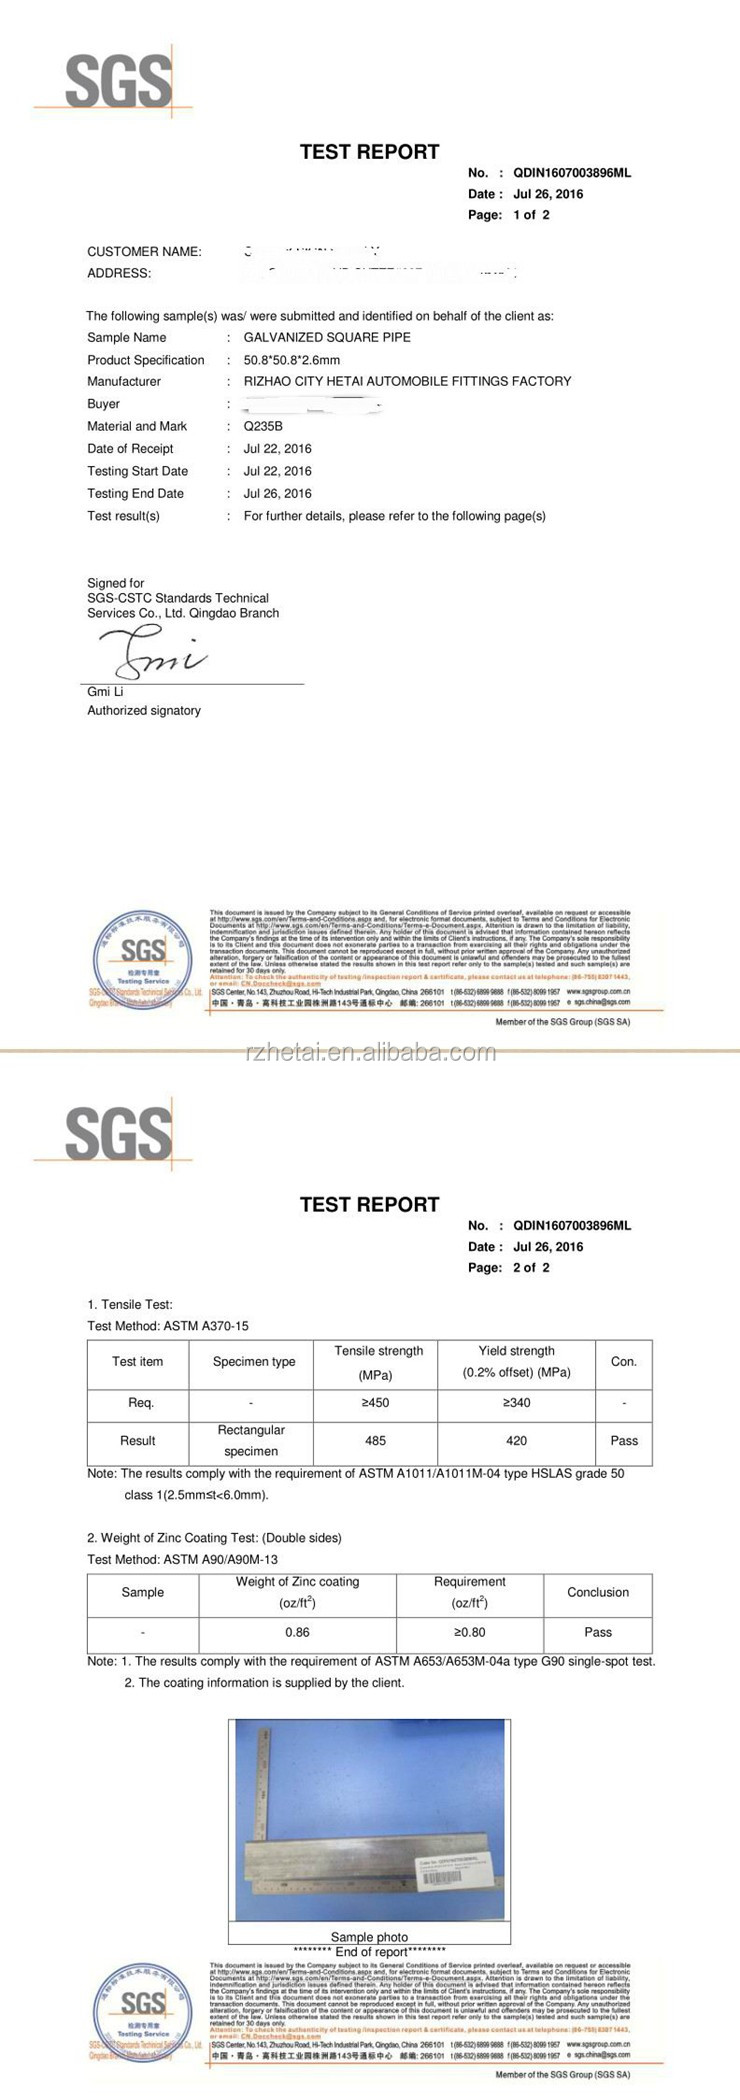 tensile test report The tensile test lab report writer should also make predictions or conclusions based on the findings odes the literature agree with values presented in literature all sources consulted with the report must be acknowledged using proper referencing within the text, as well as in the reference entries at the end of the paper.